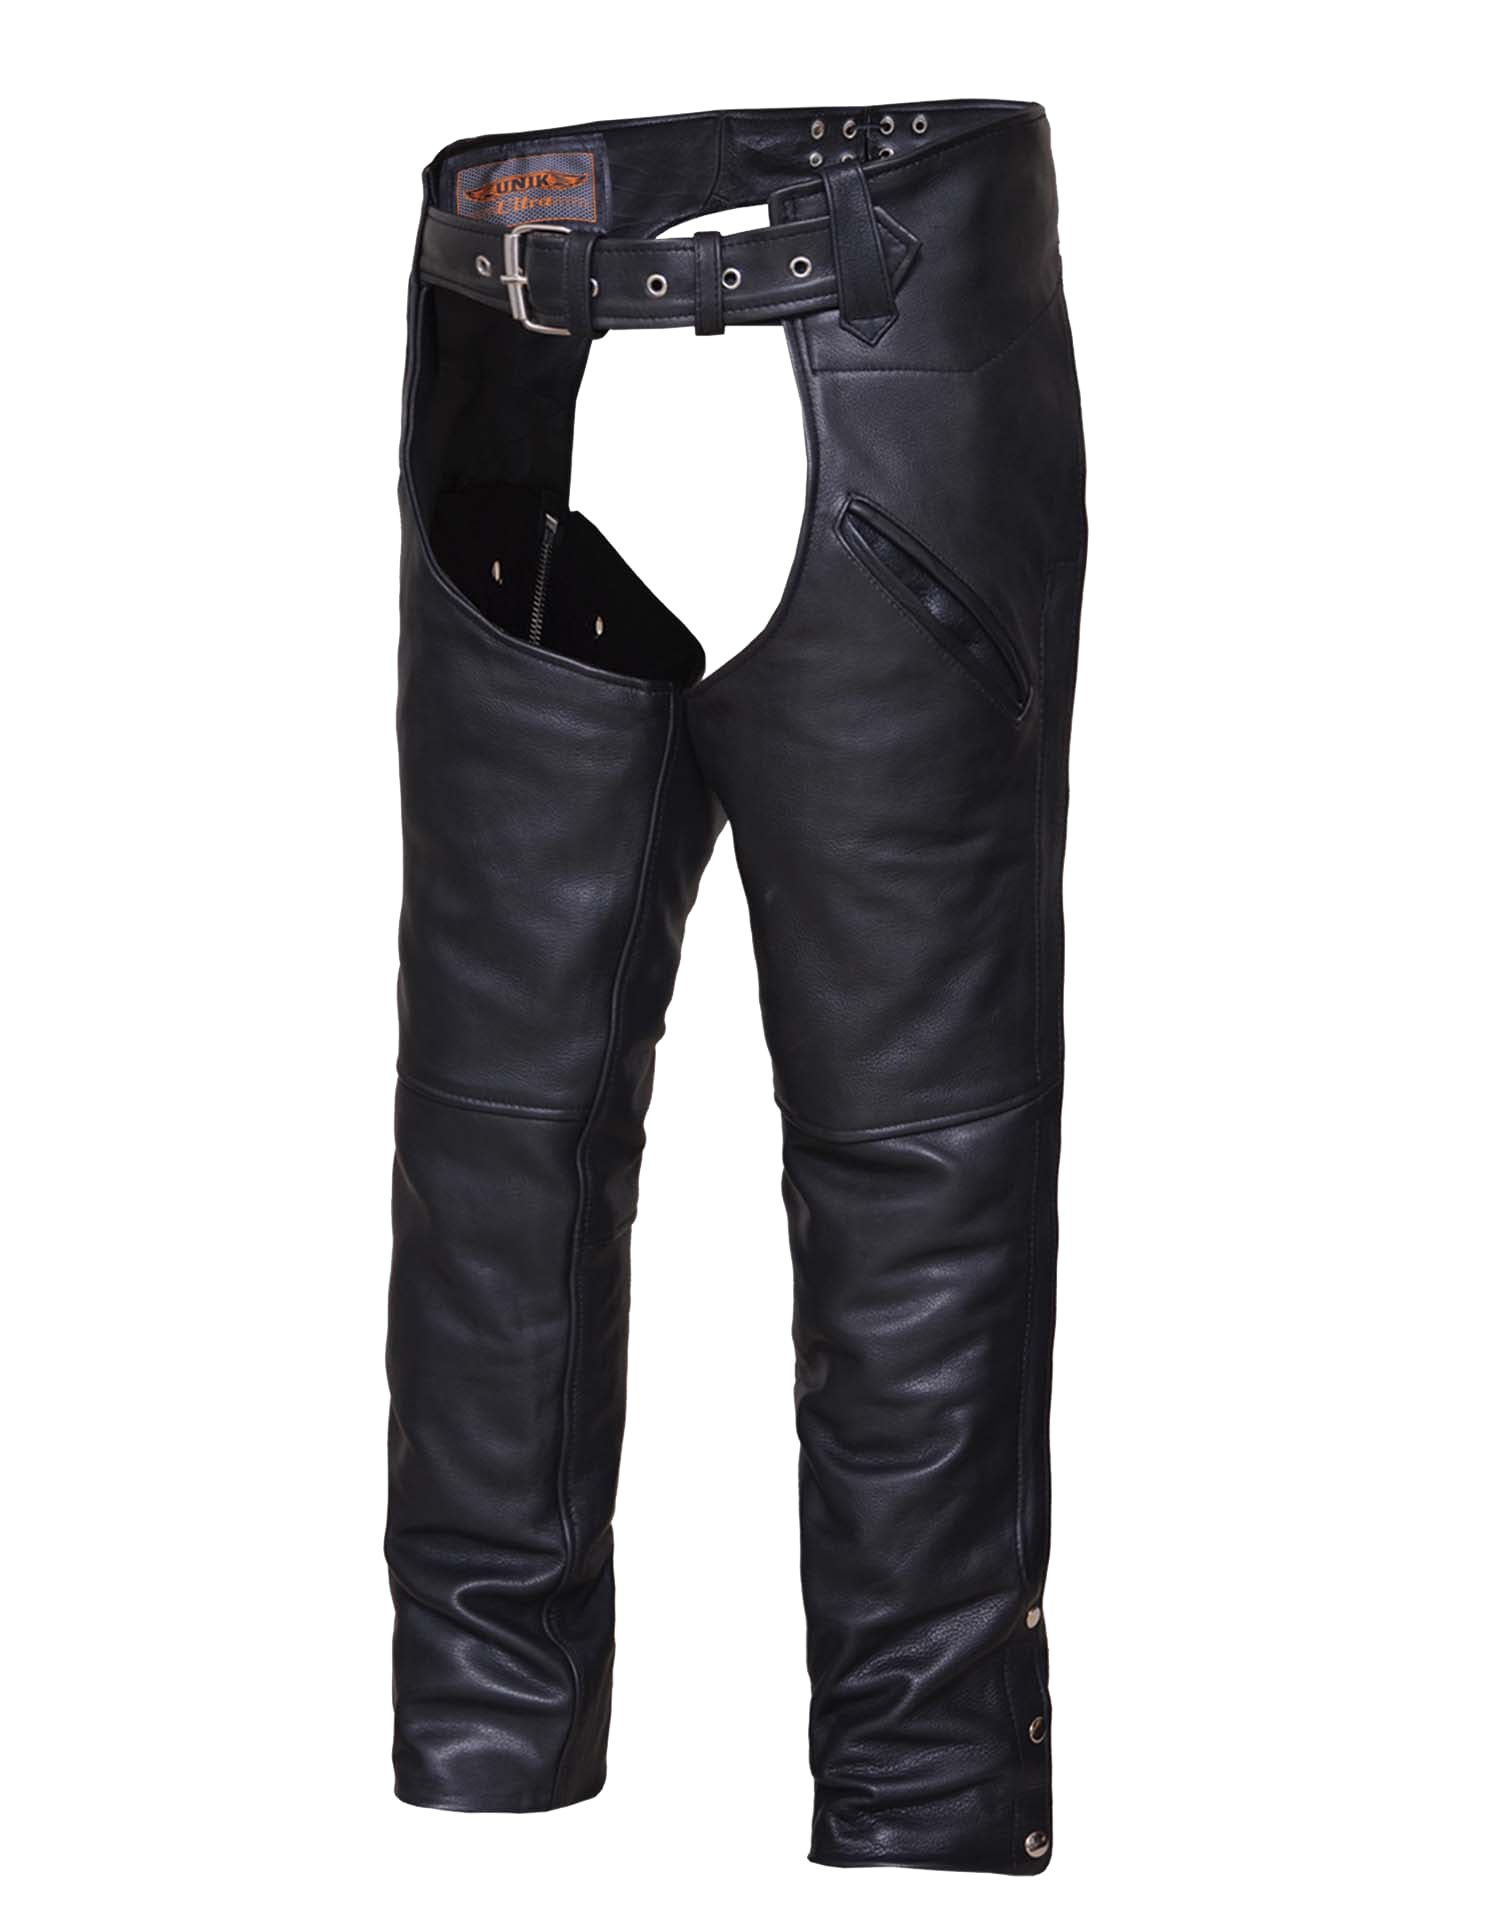 Ladies Leather Chaps - Womens Motorcycle Chaps - Biker